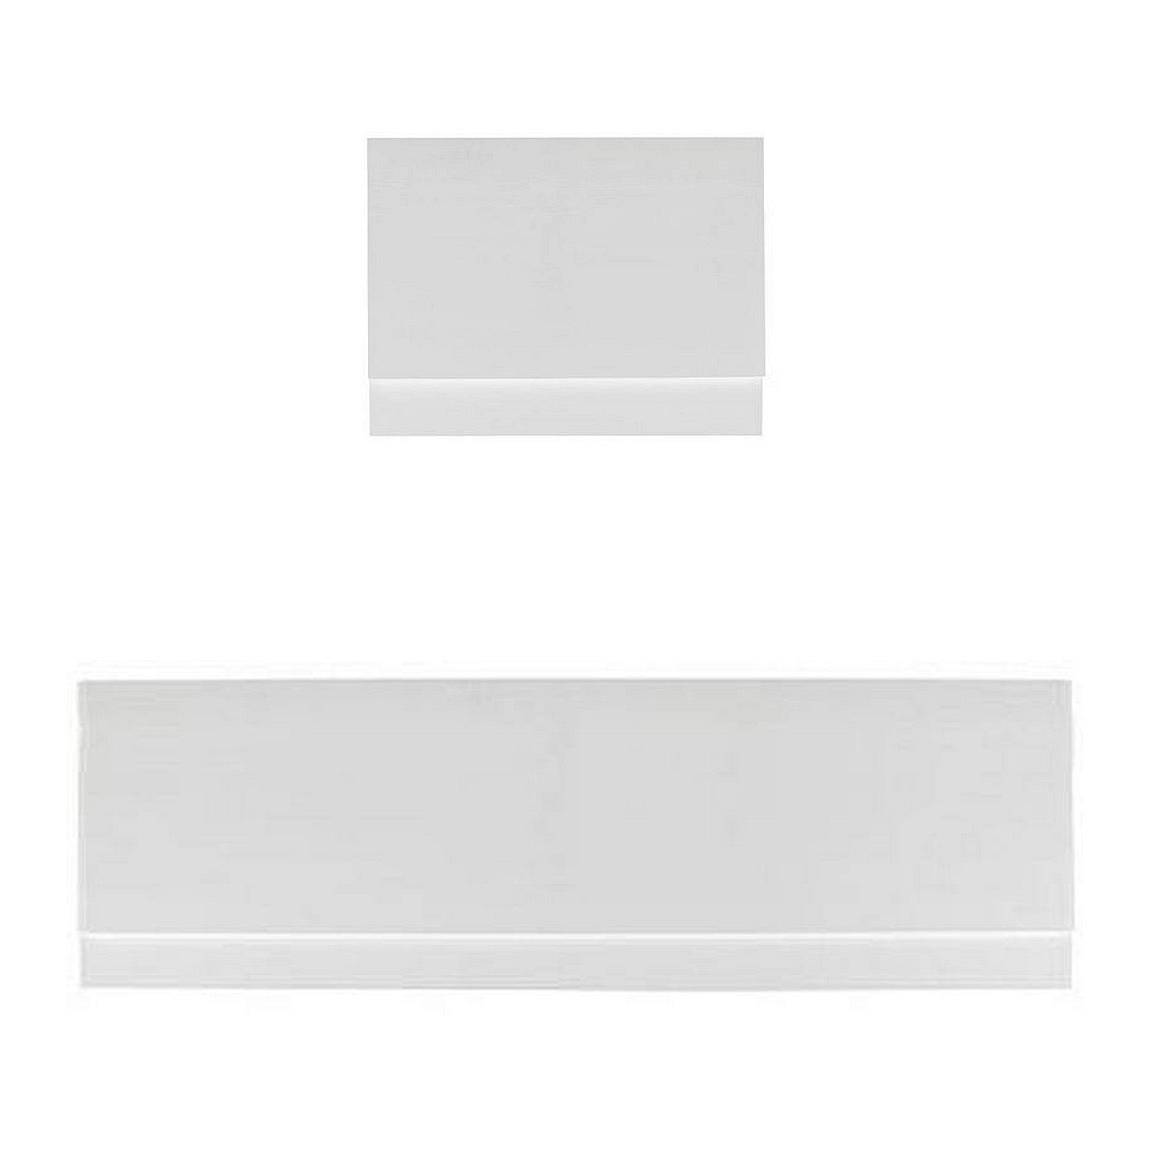 Image of Gloss White Straight Bath Panel Pack 1700 x 750